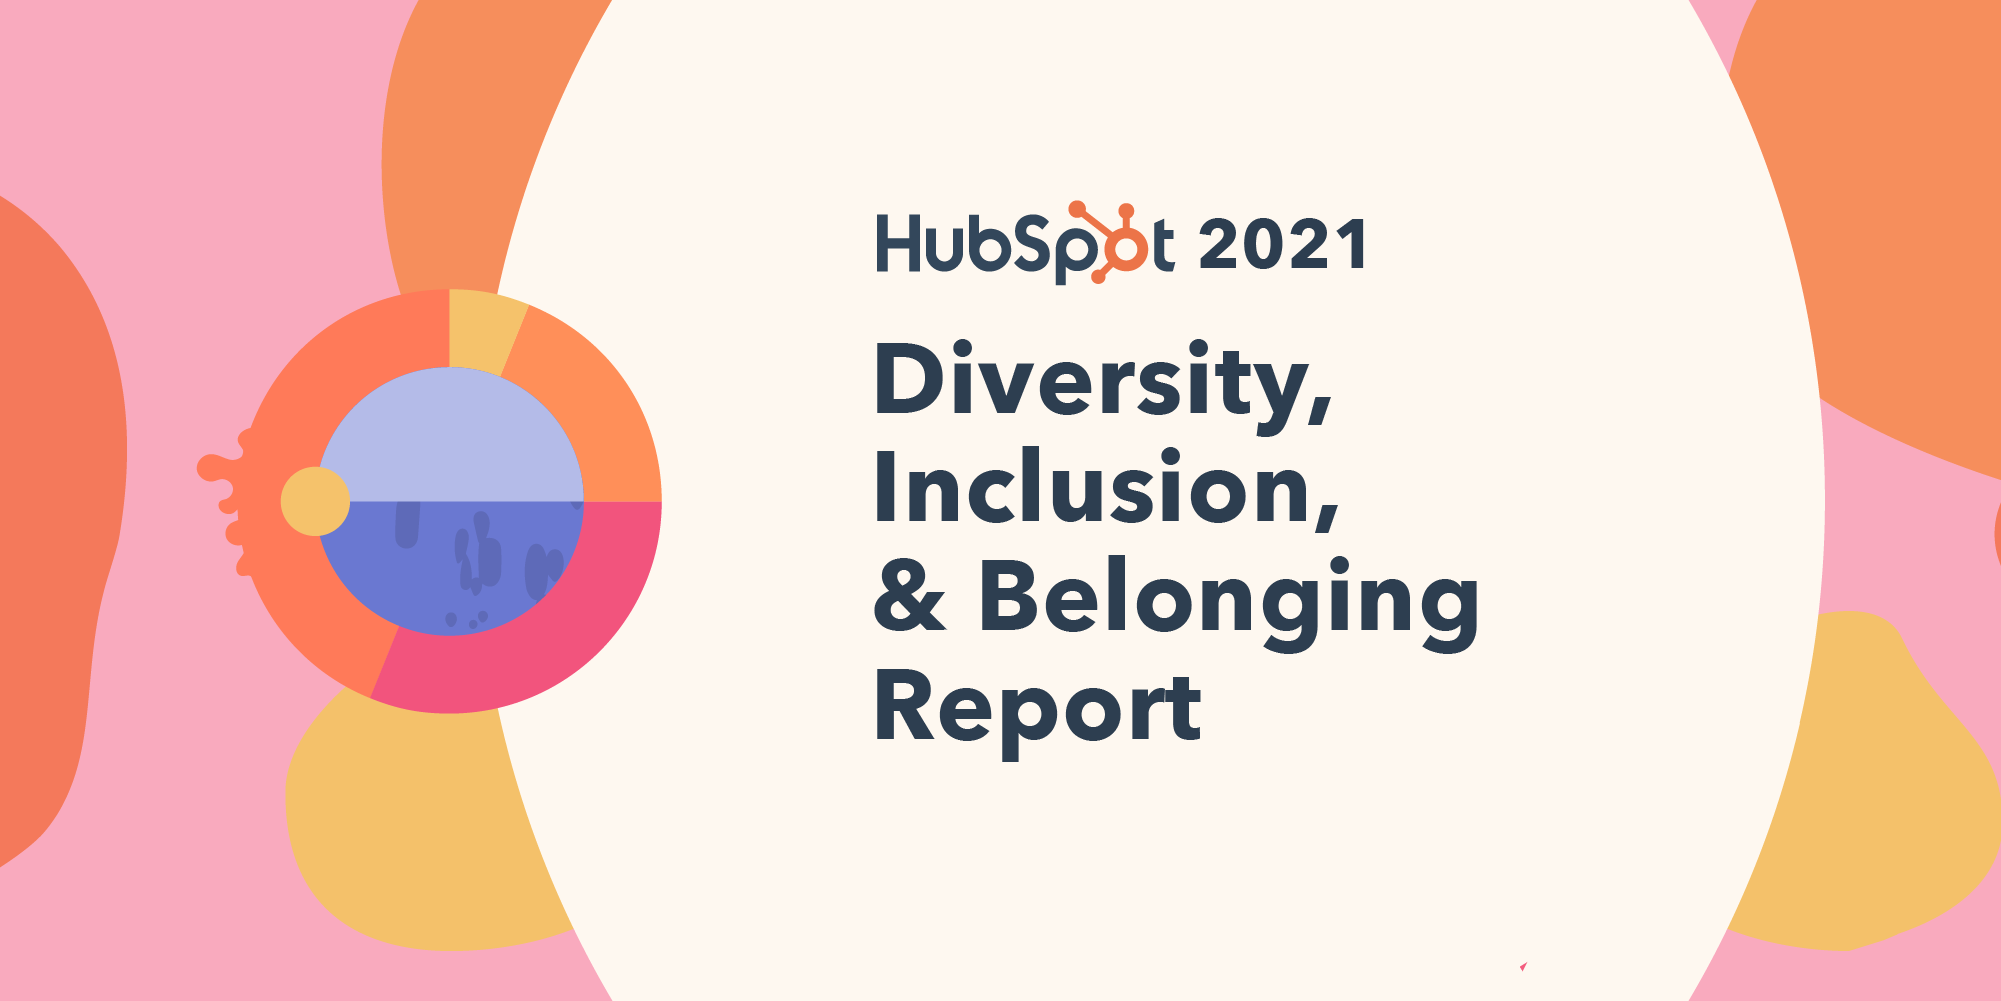 HubSpot Releases 5th Annual Diversity, Inclusion, & Belonging Report, With a Focus on Driving Lasting Change